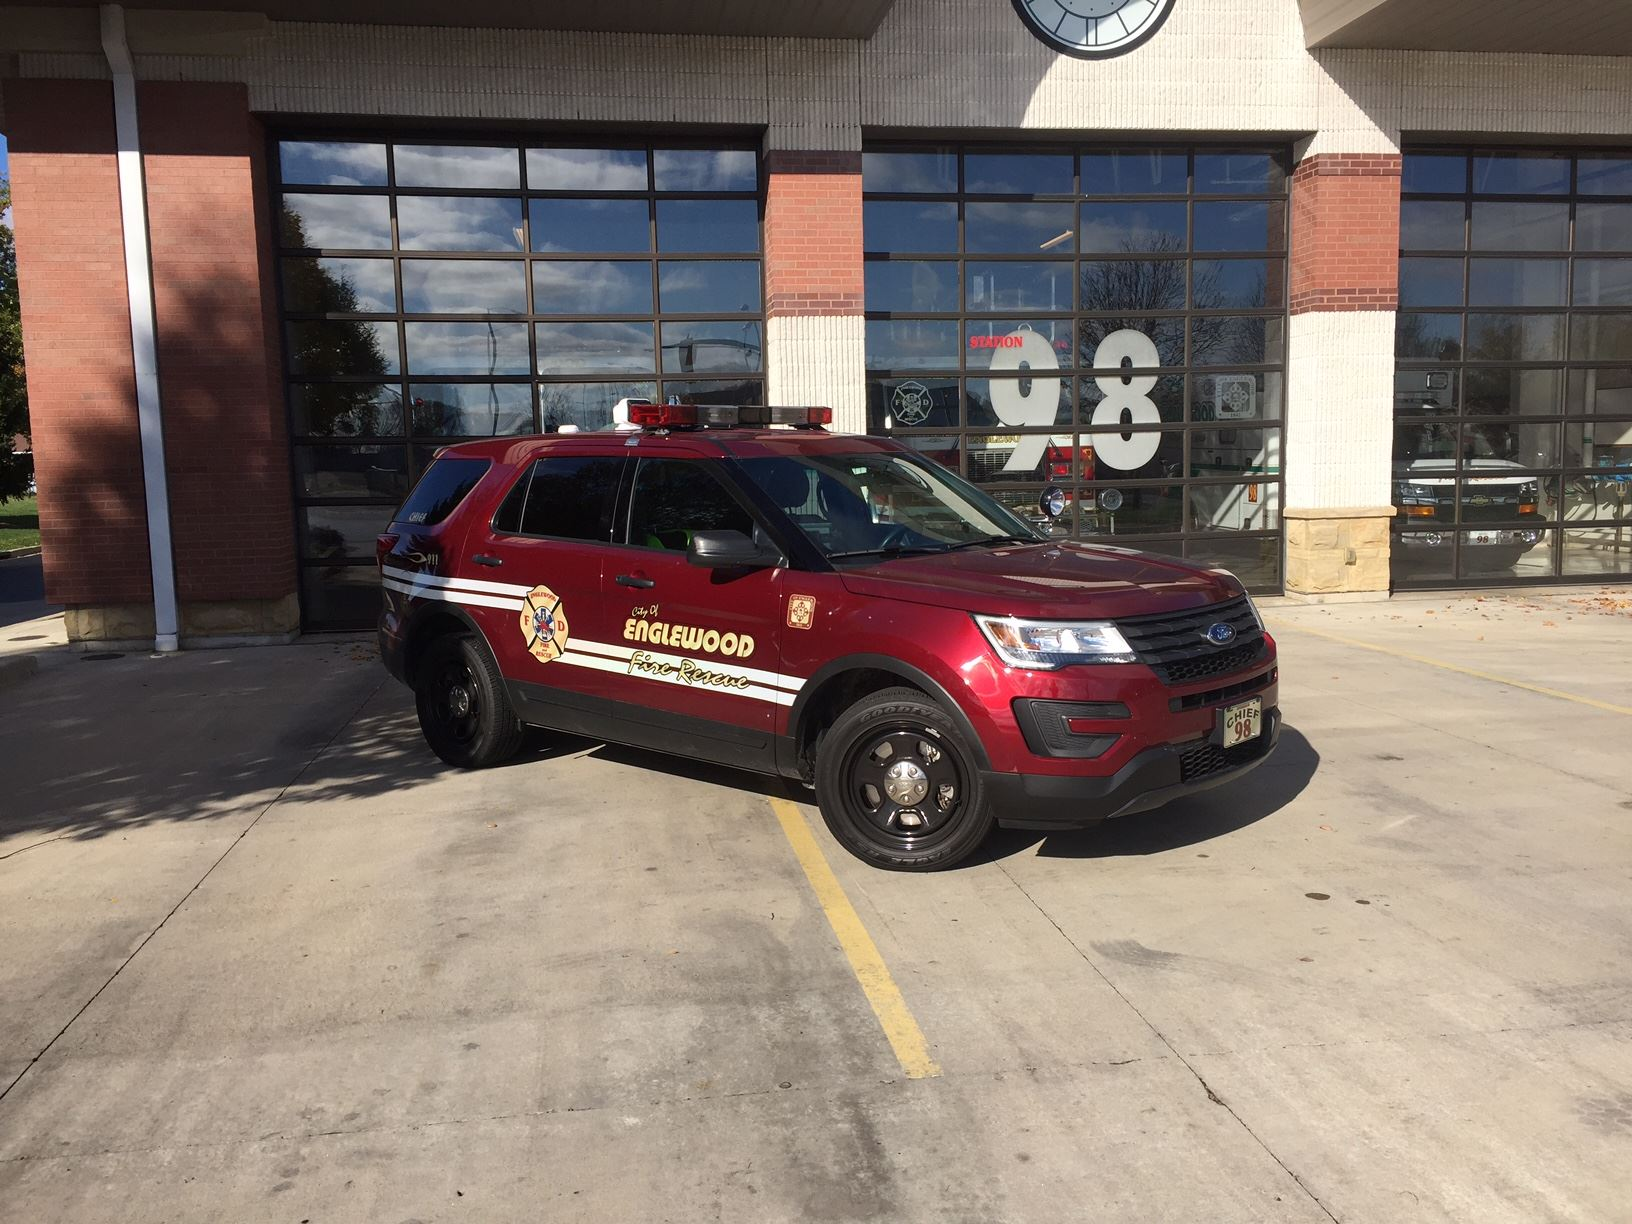 Chief 98 - 2016 Ford Explorer